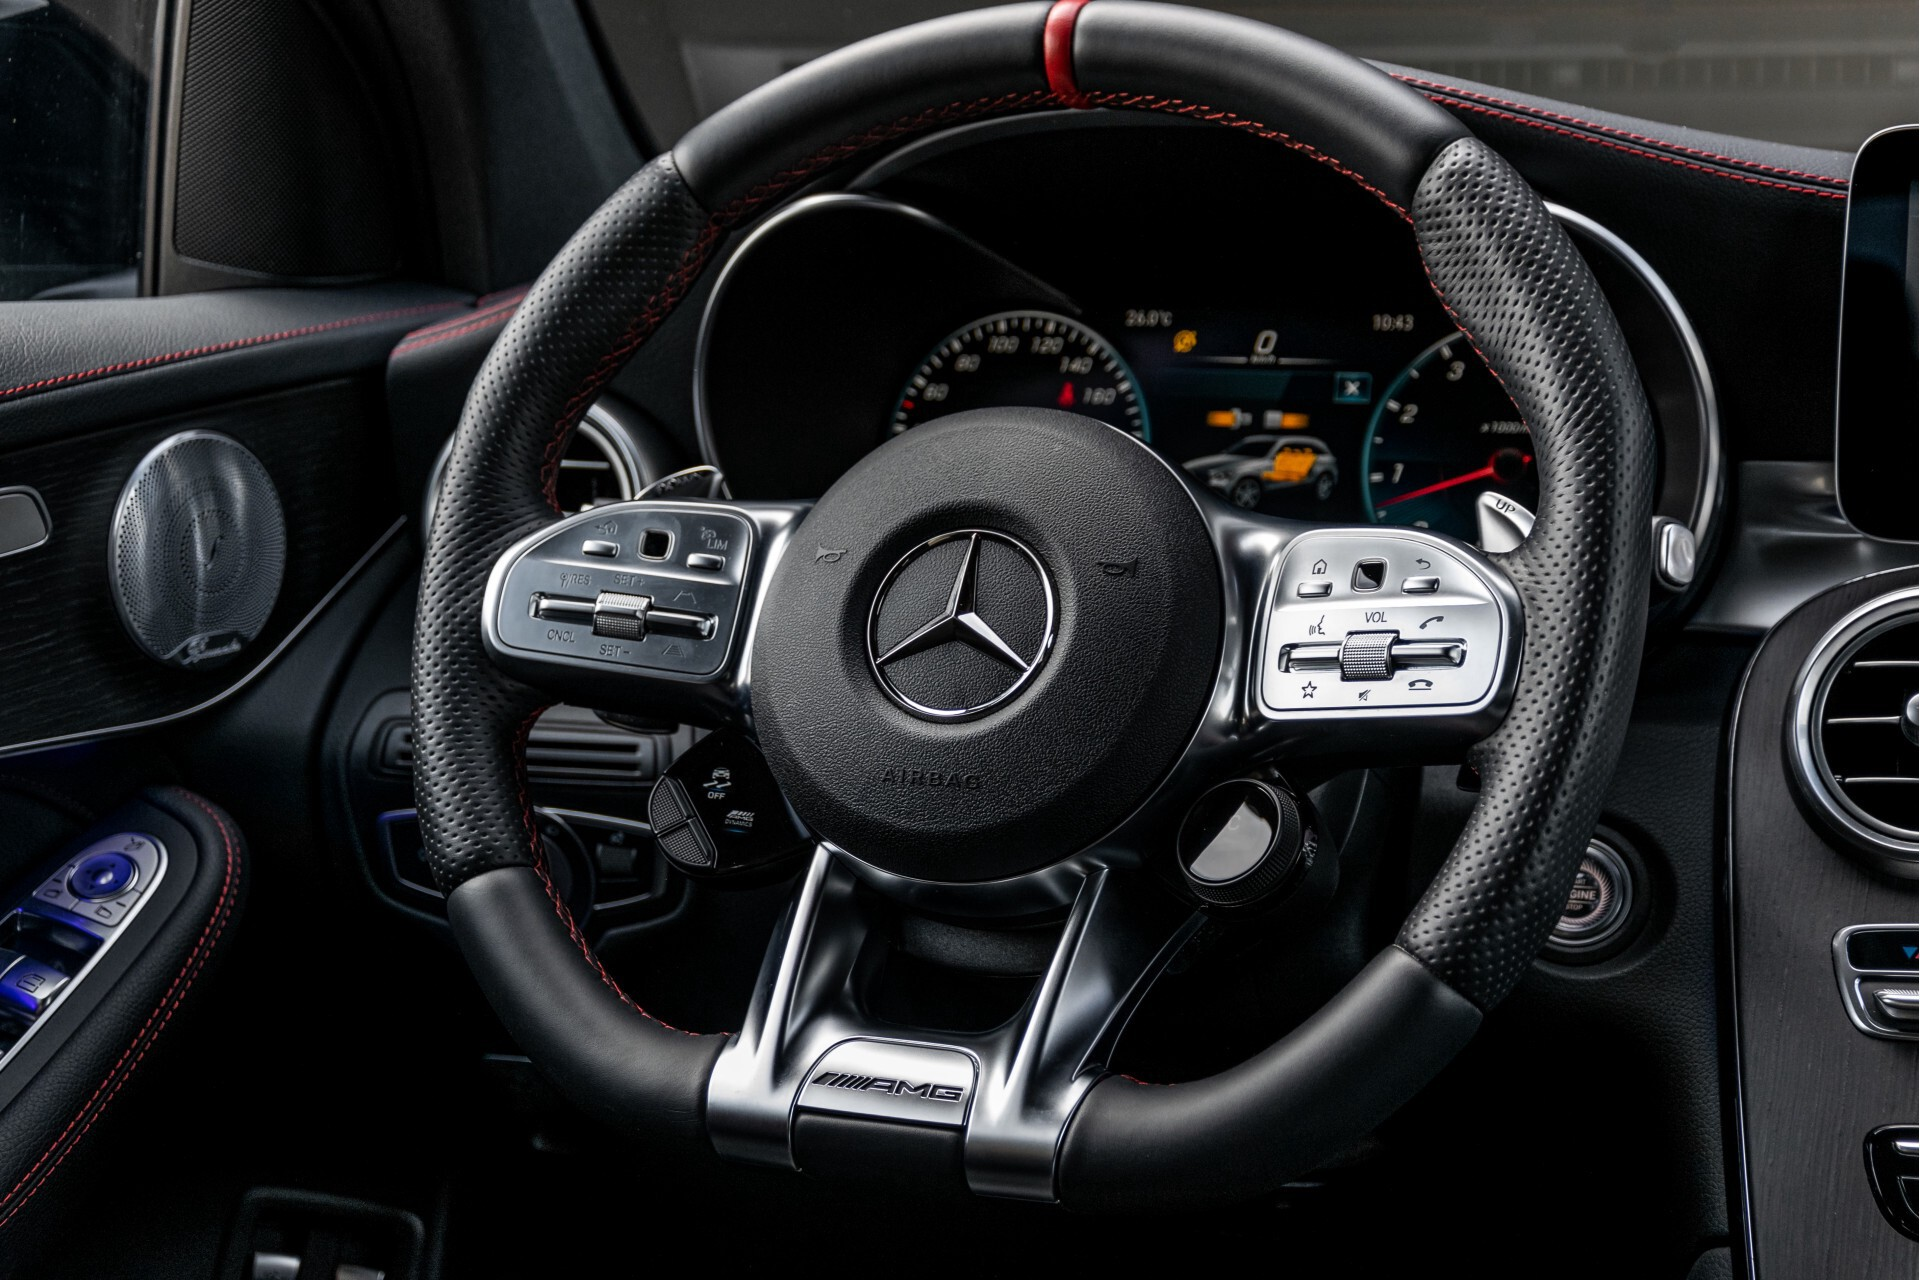 Mercedes-Benz GLC 43 AMG 4-M Night Pano/Sportuitlaat/Keyless/Distronic/Widescreen/MBUX/Trekhaak Aut9 Foto 8